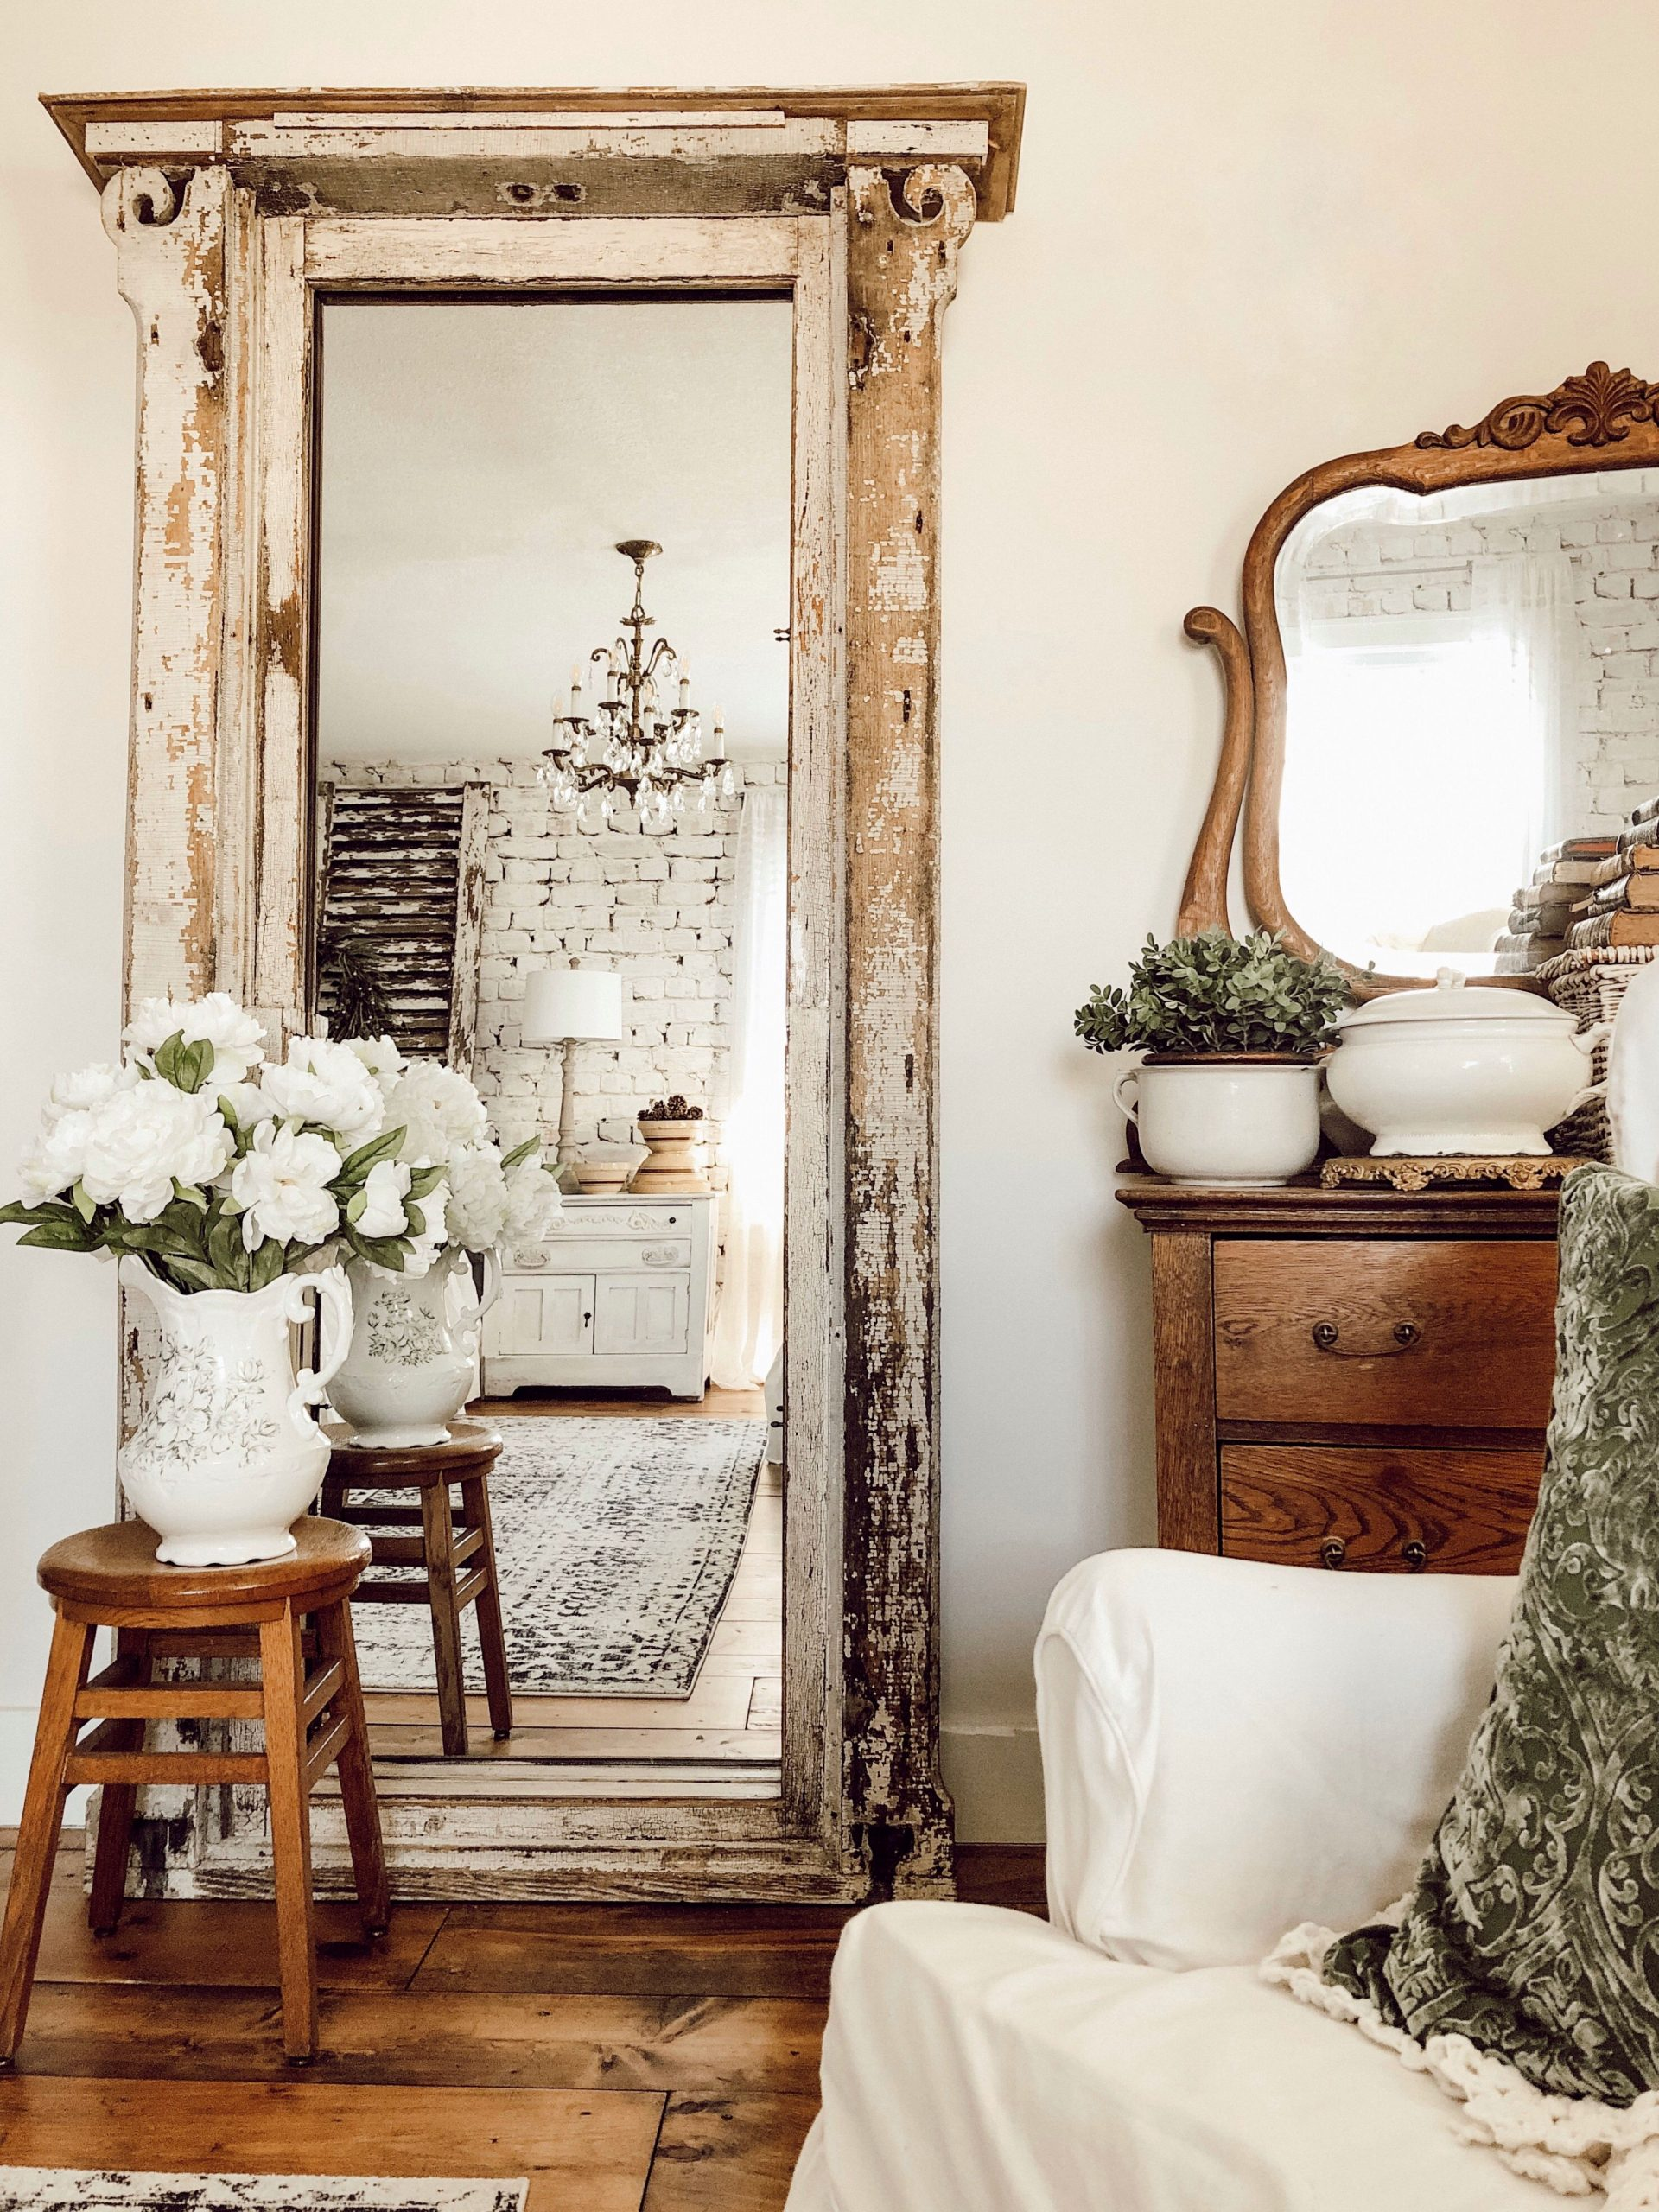 Decorating with Vintage Items in the Master Bedroom – The House on Winchester